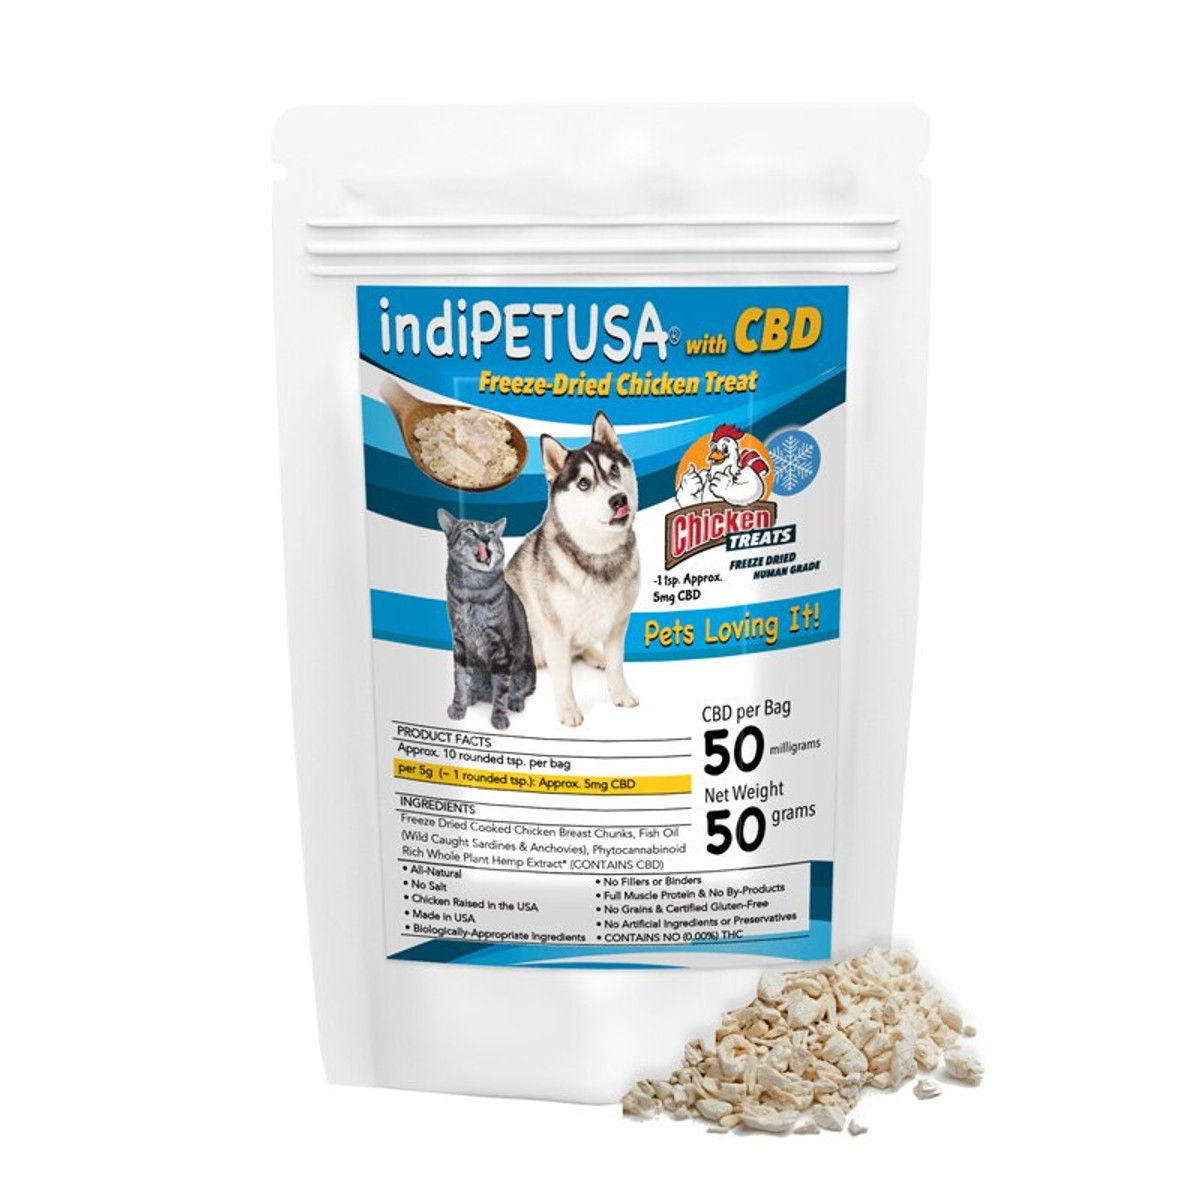 indiPETUSA® CBD Chicken Treats for Cats & Dogs